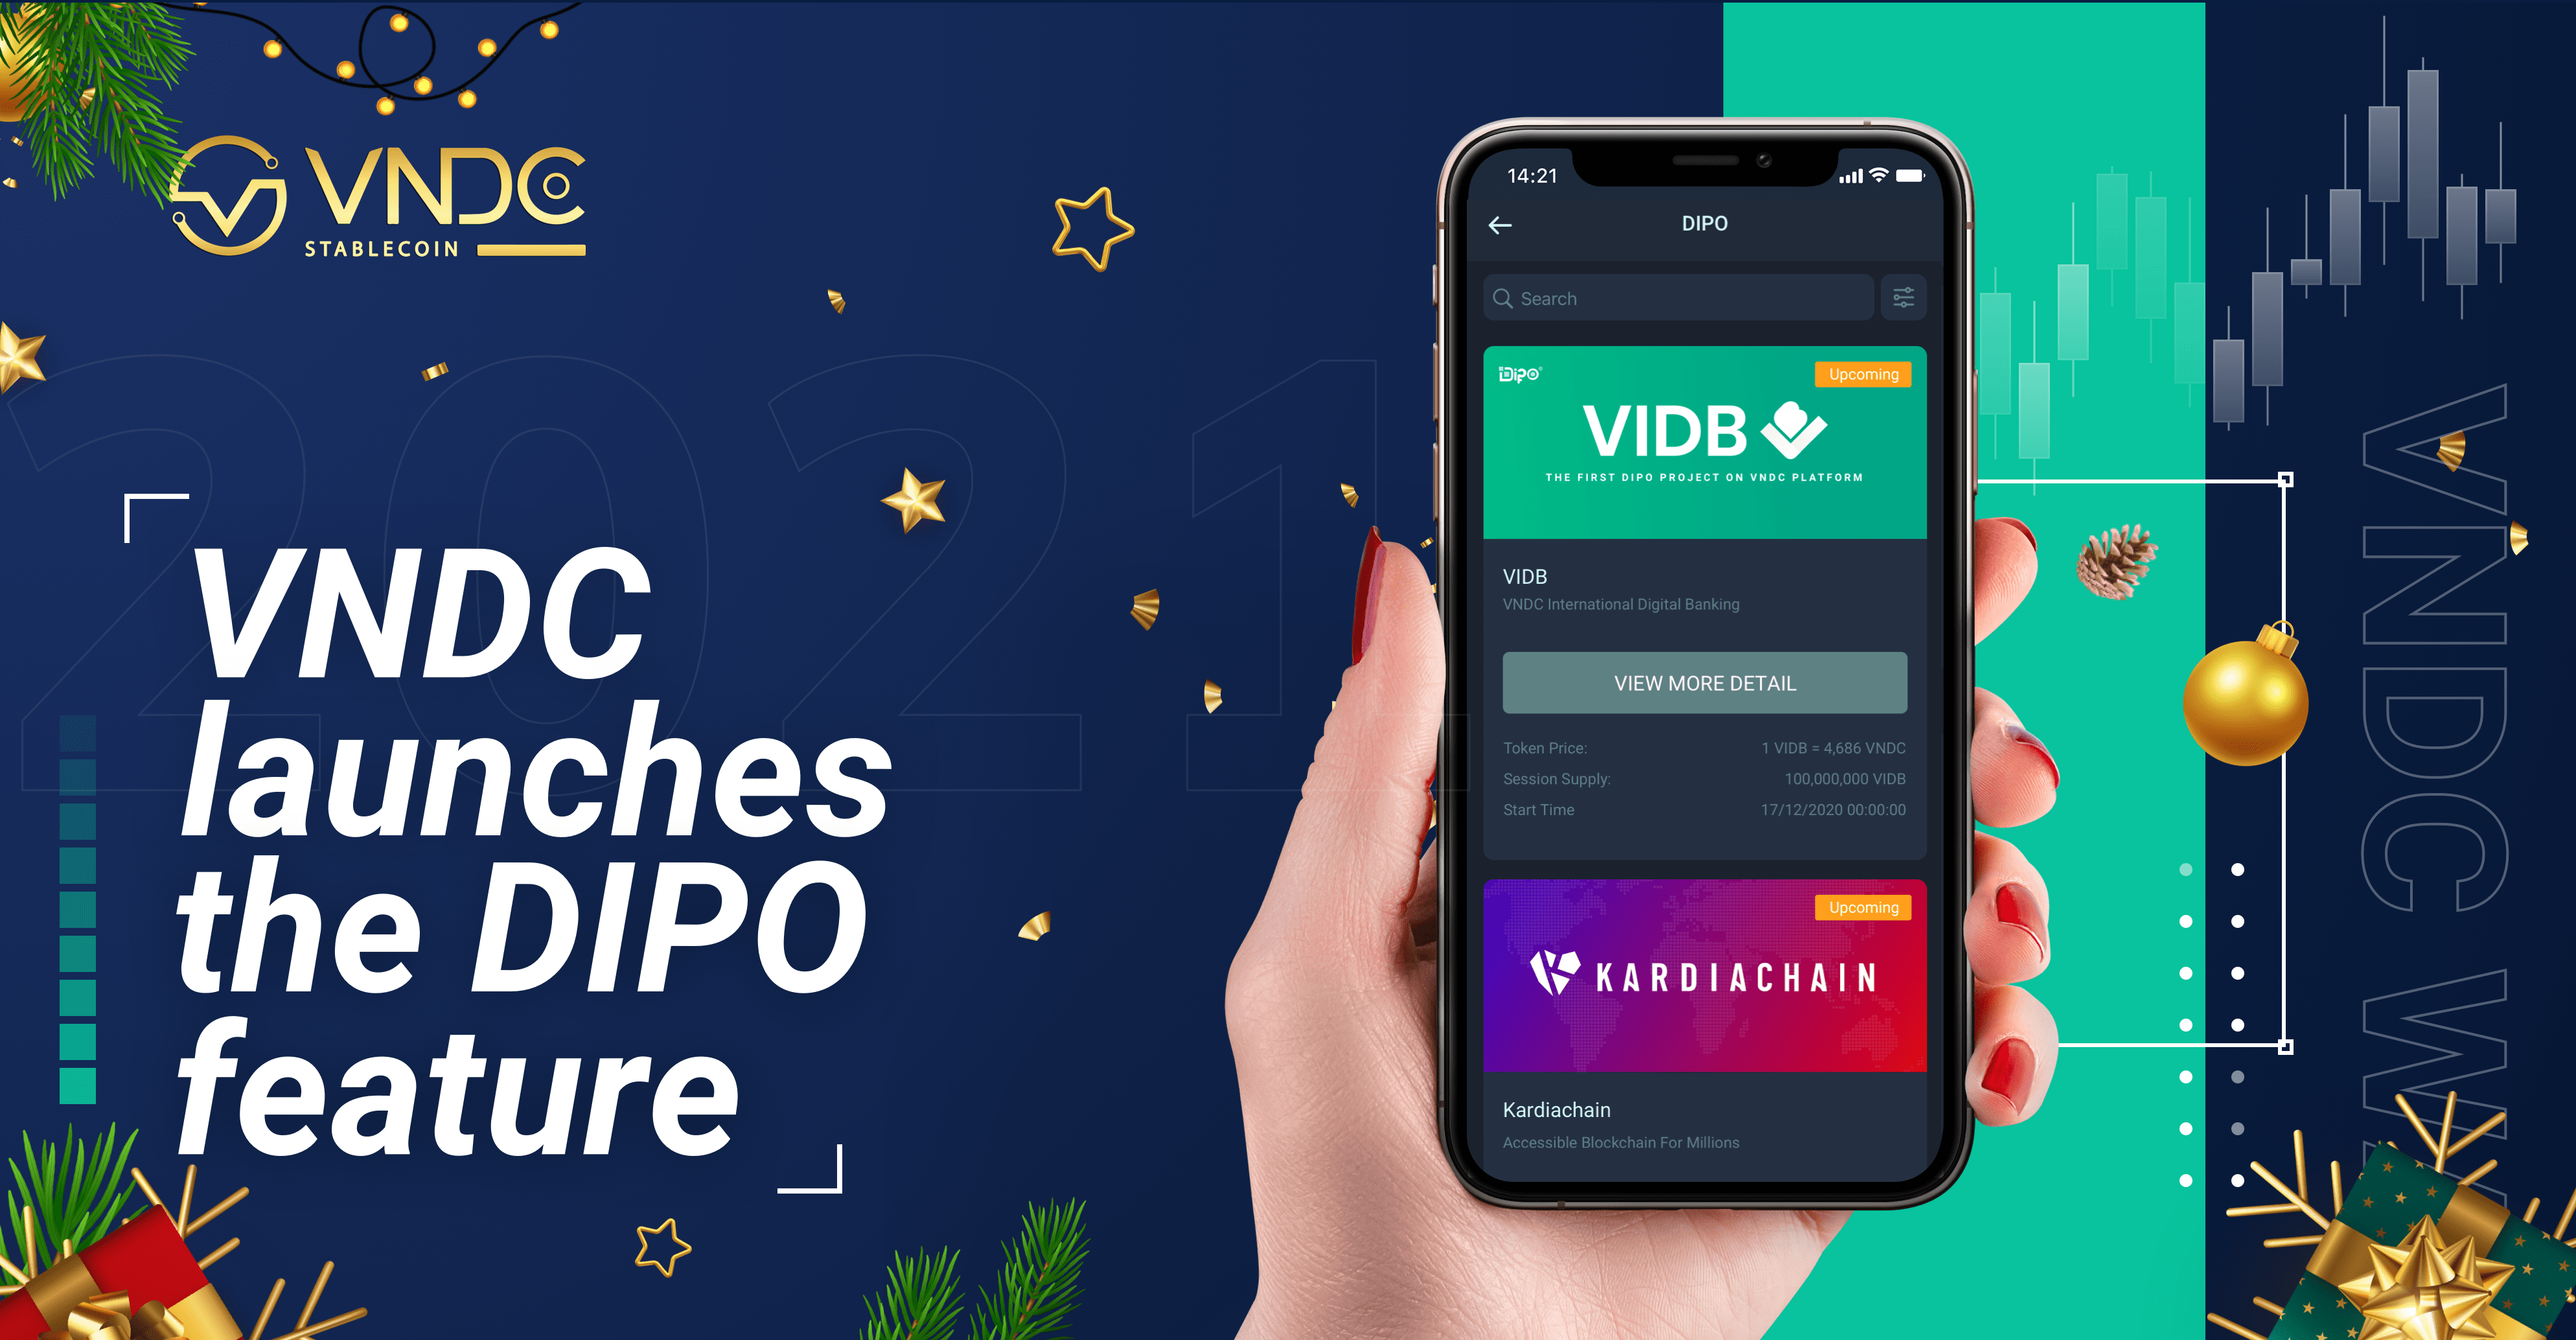 VNDC launches the DIPO feature, supporting new projects